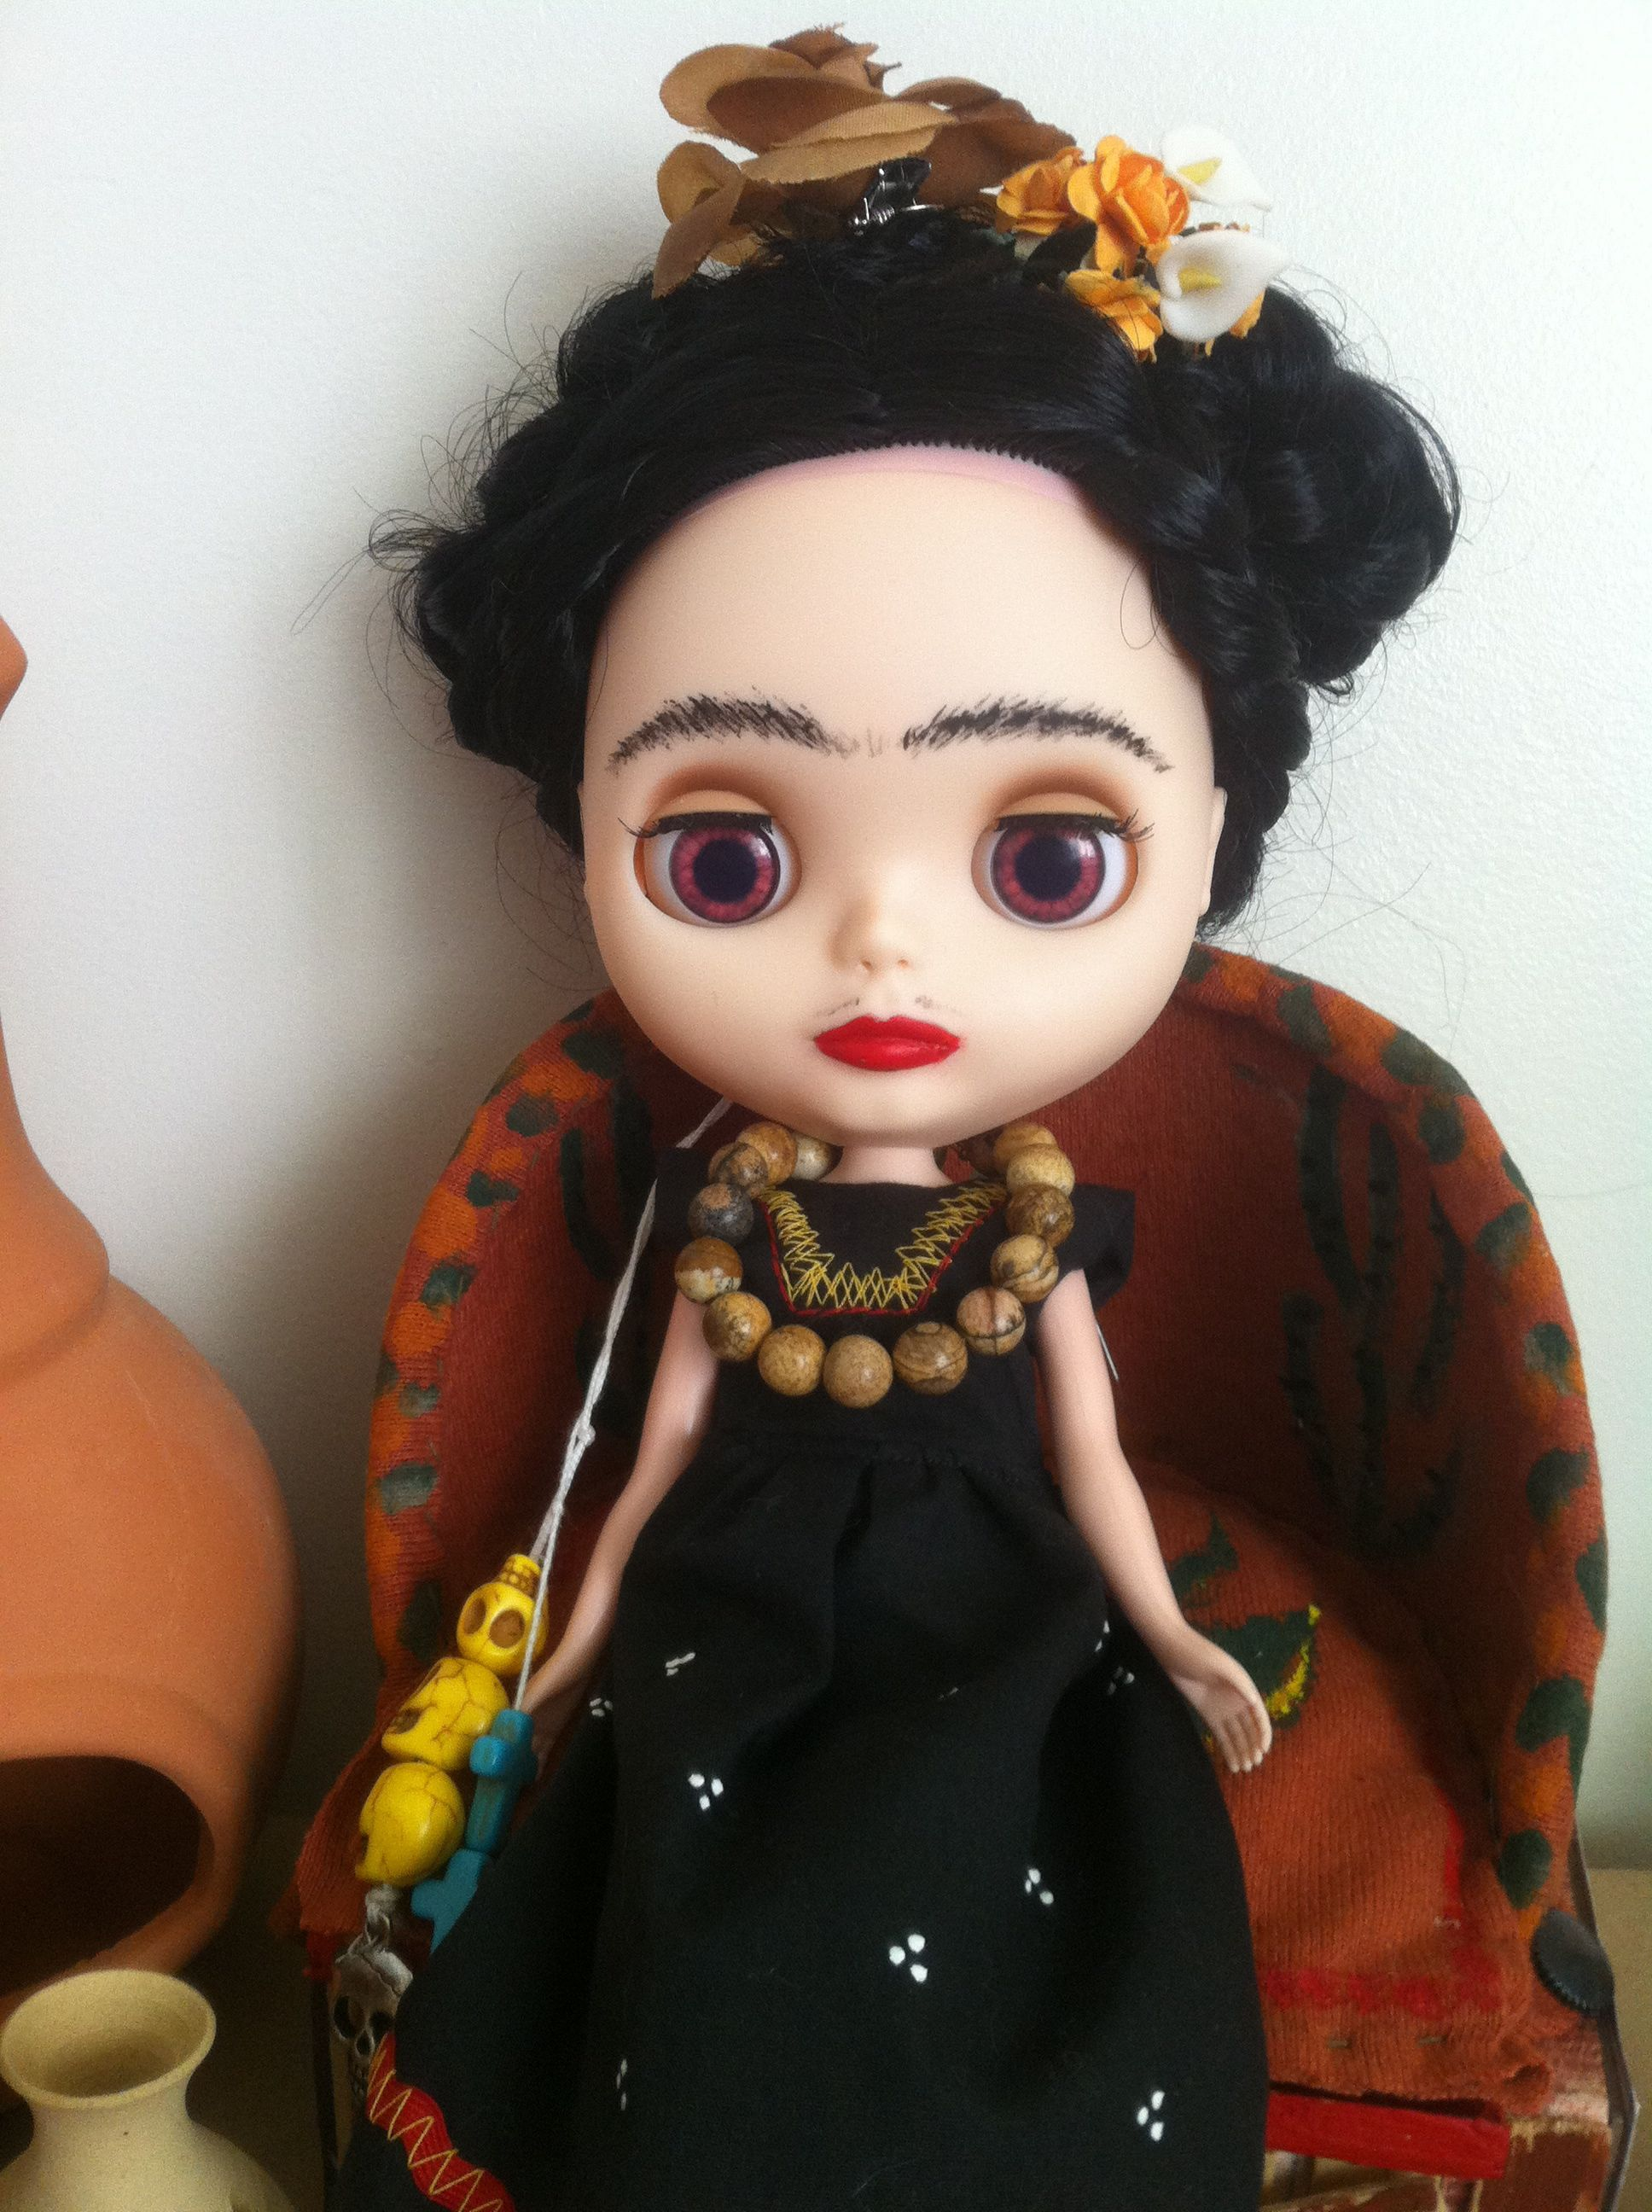 Baby Dolls Vip Pin By Barb Hatfield On Off The Beaten Path Blythe Dolls